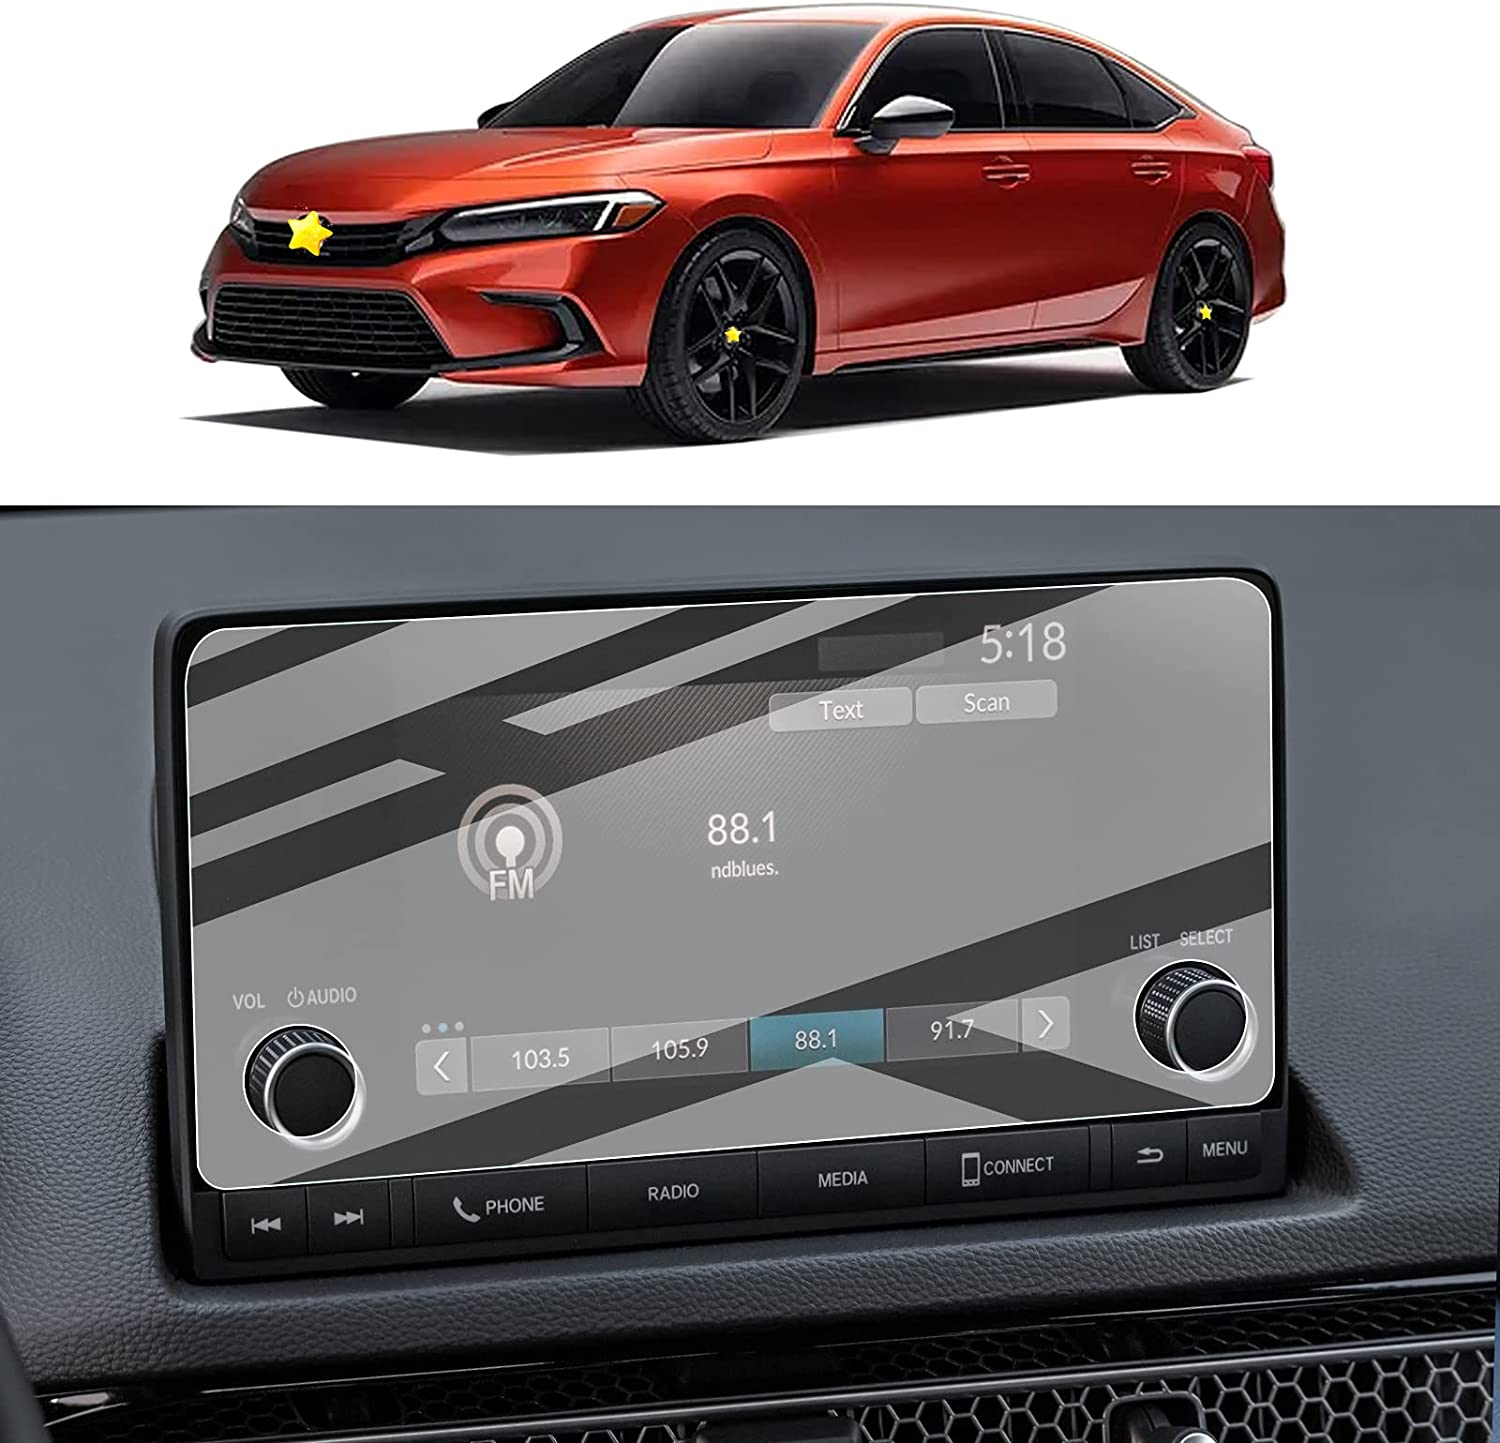 Plastic Screen Protector for 2022 Civic 11th Generation Navigation Display High Clarity Anti-Scratch Touch PET Plastic Crystal Clear Protective Film (7In)